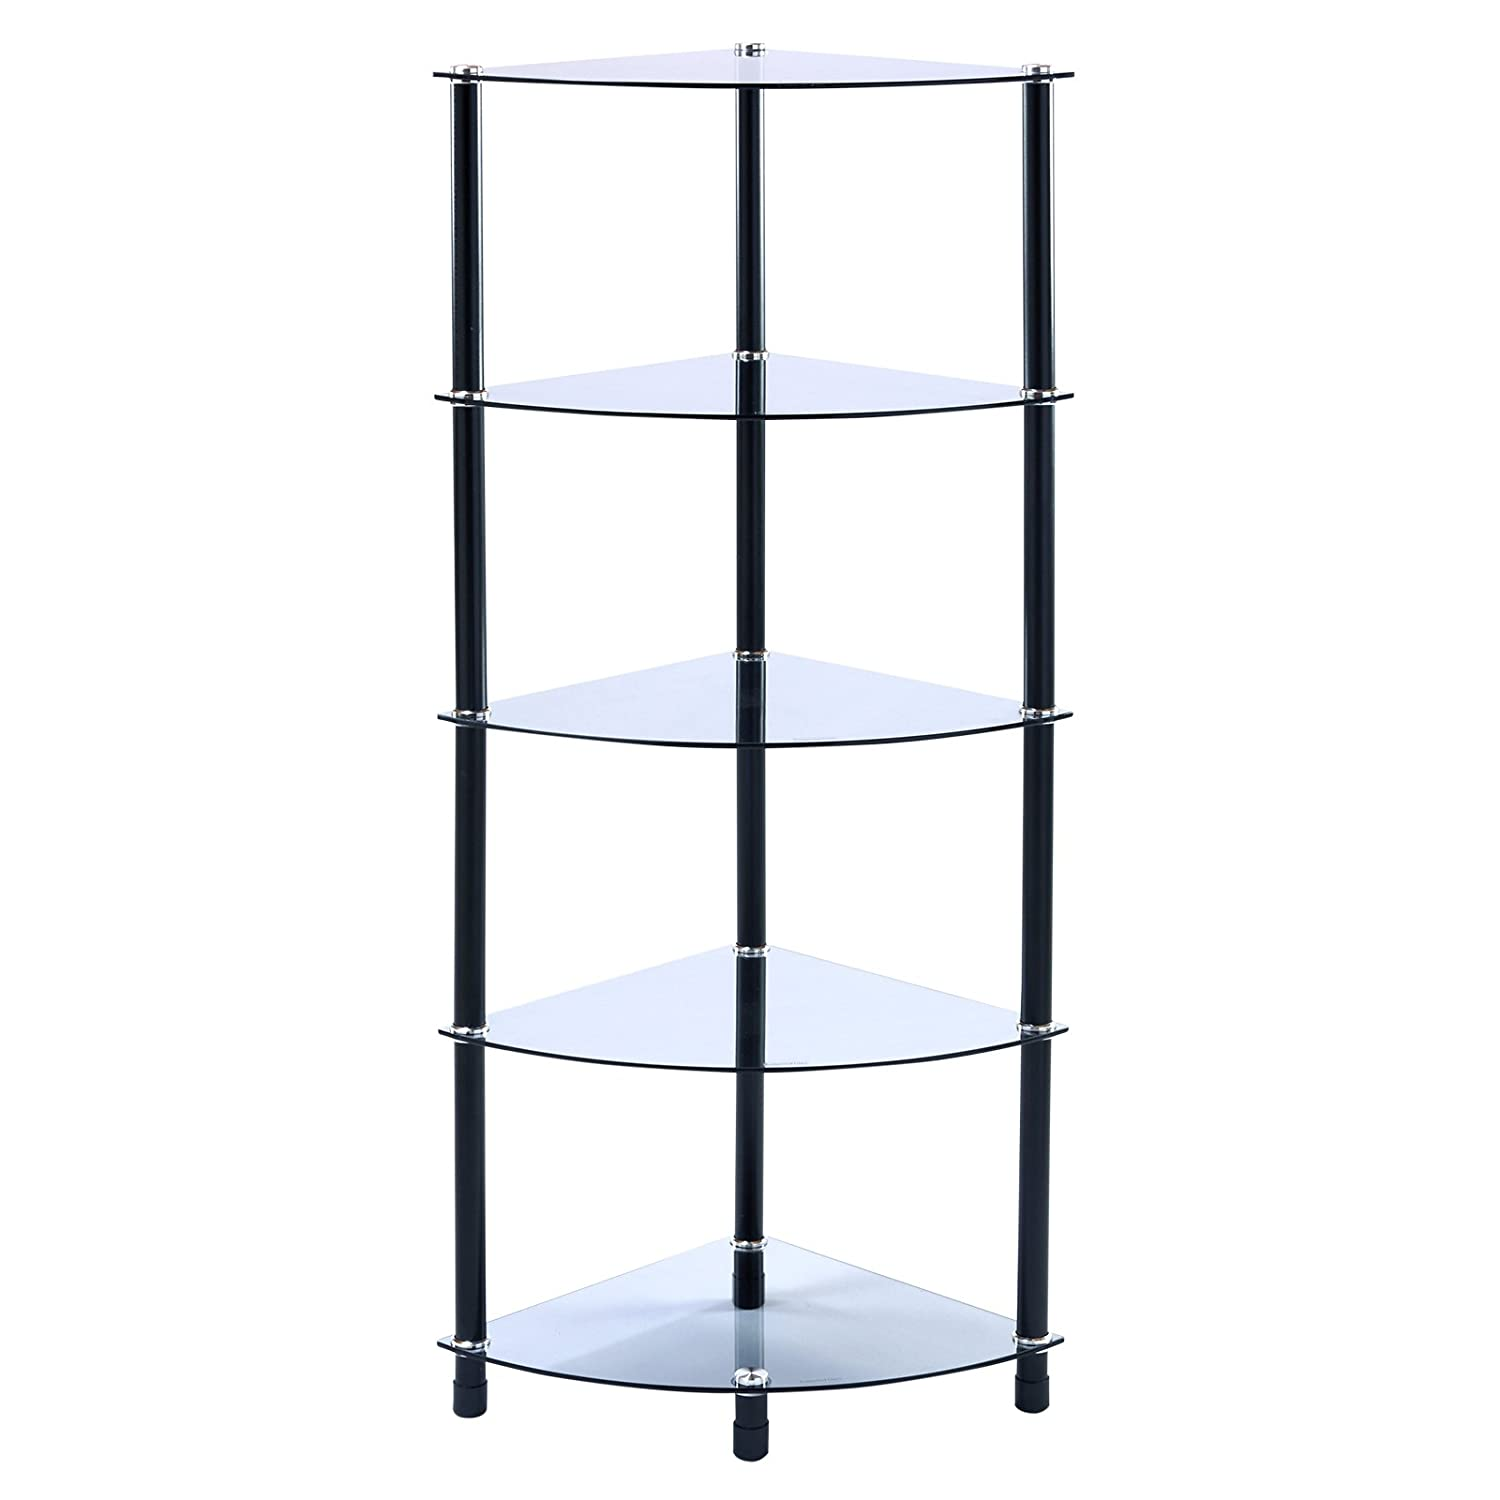 5 Tier Tinted Glass Corner Shelf Rounded Shelving Unit Display